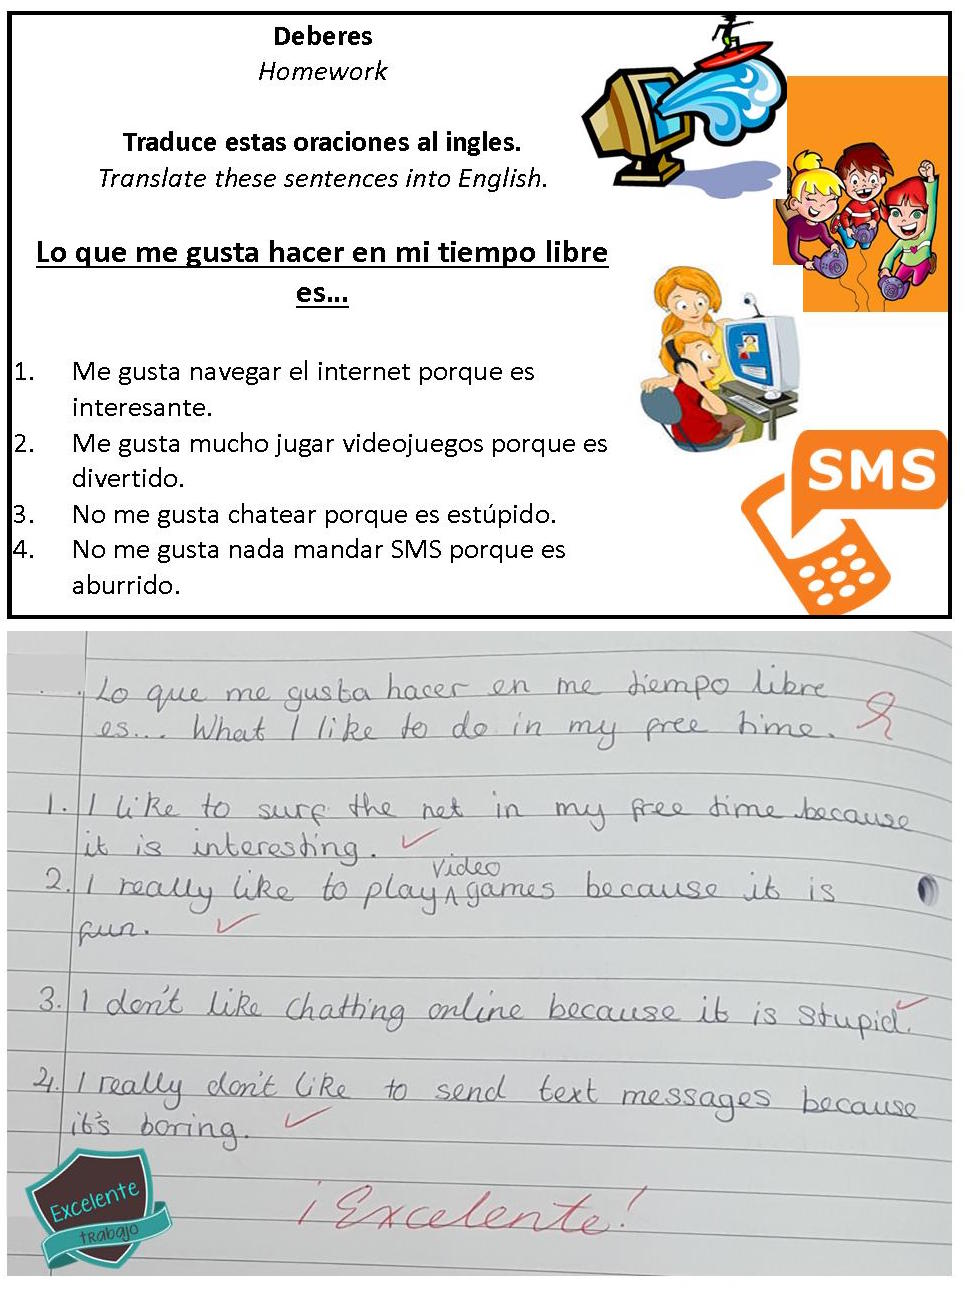 Spanish homework example 22.11.17